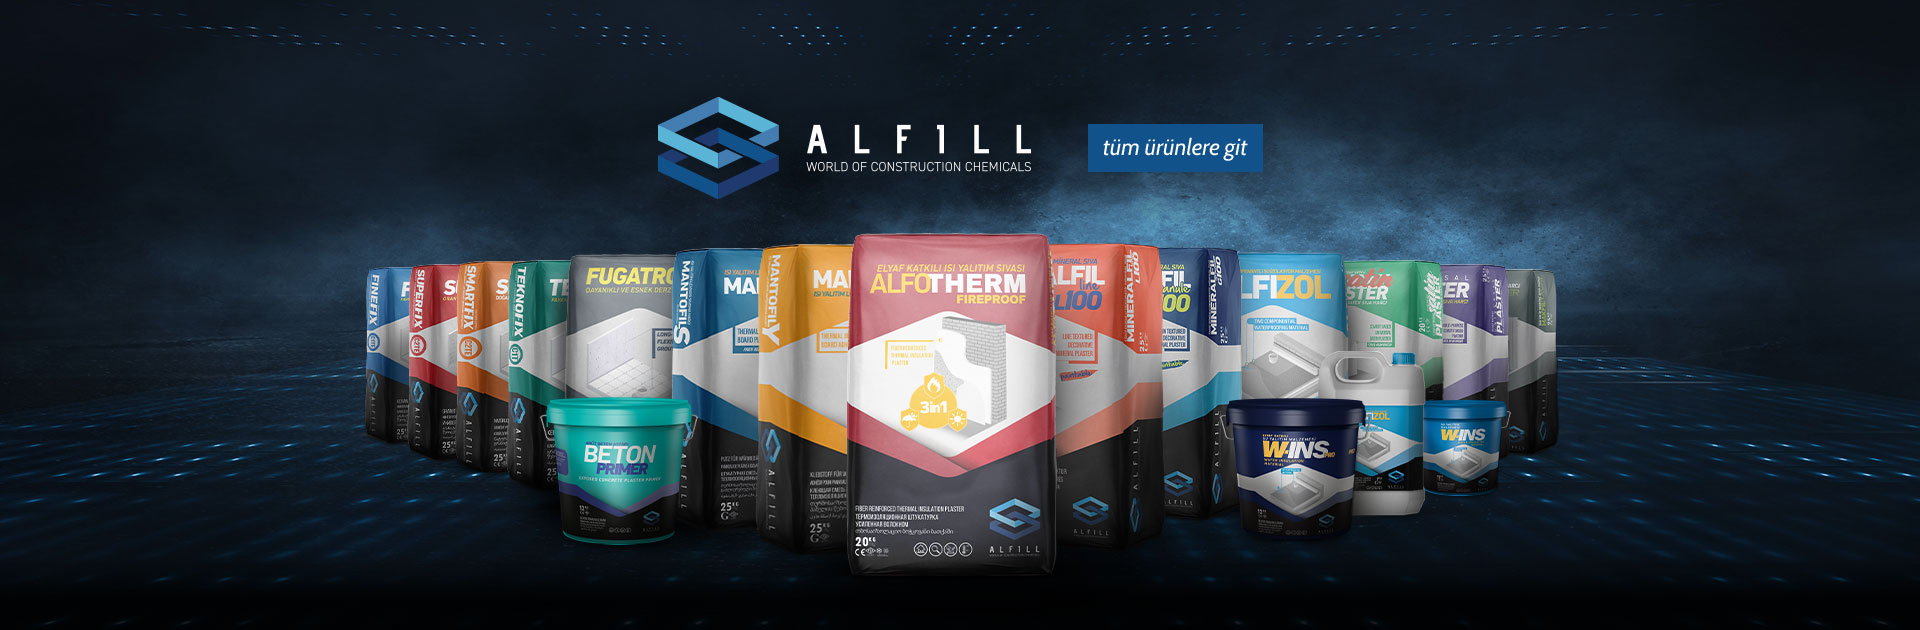 alfill products